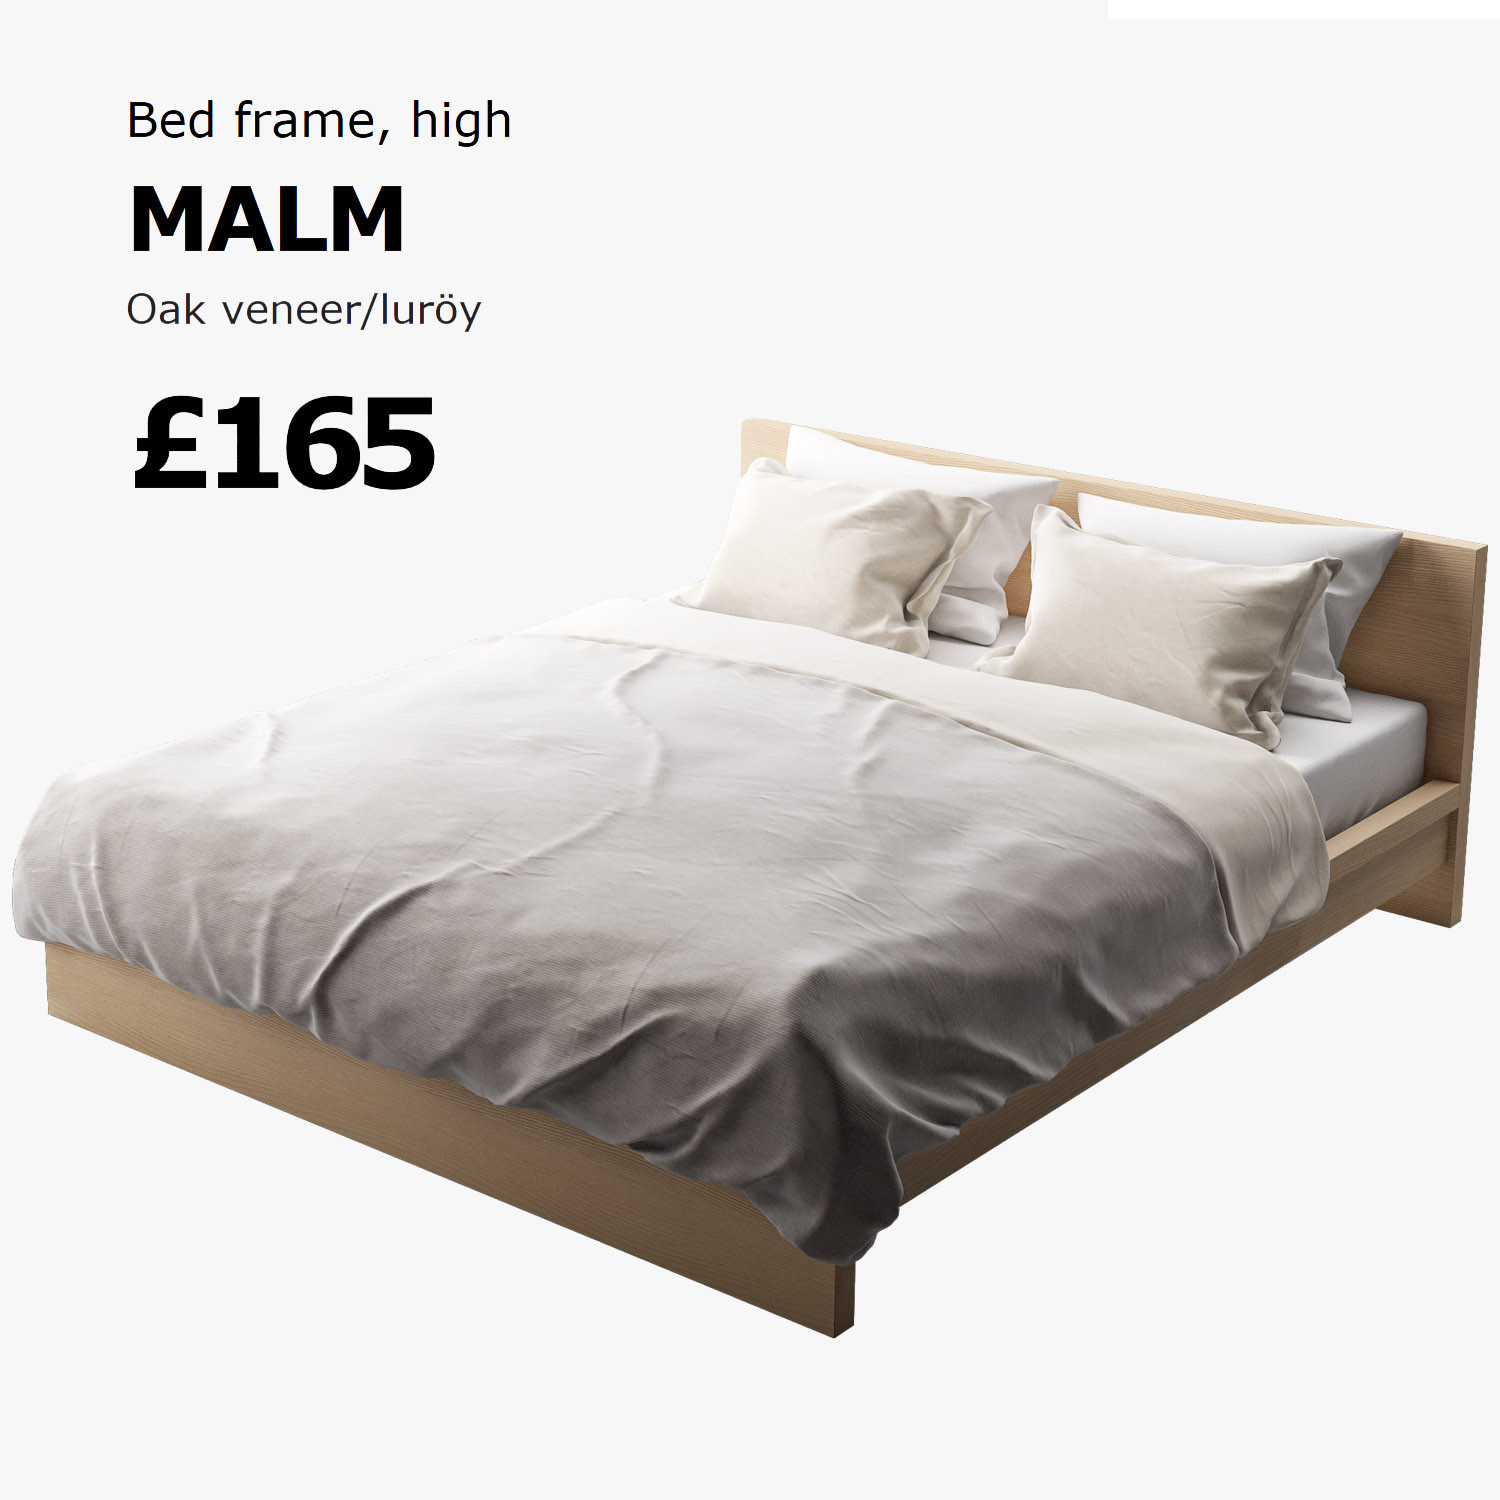 malm high bed frame review